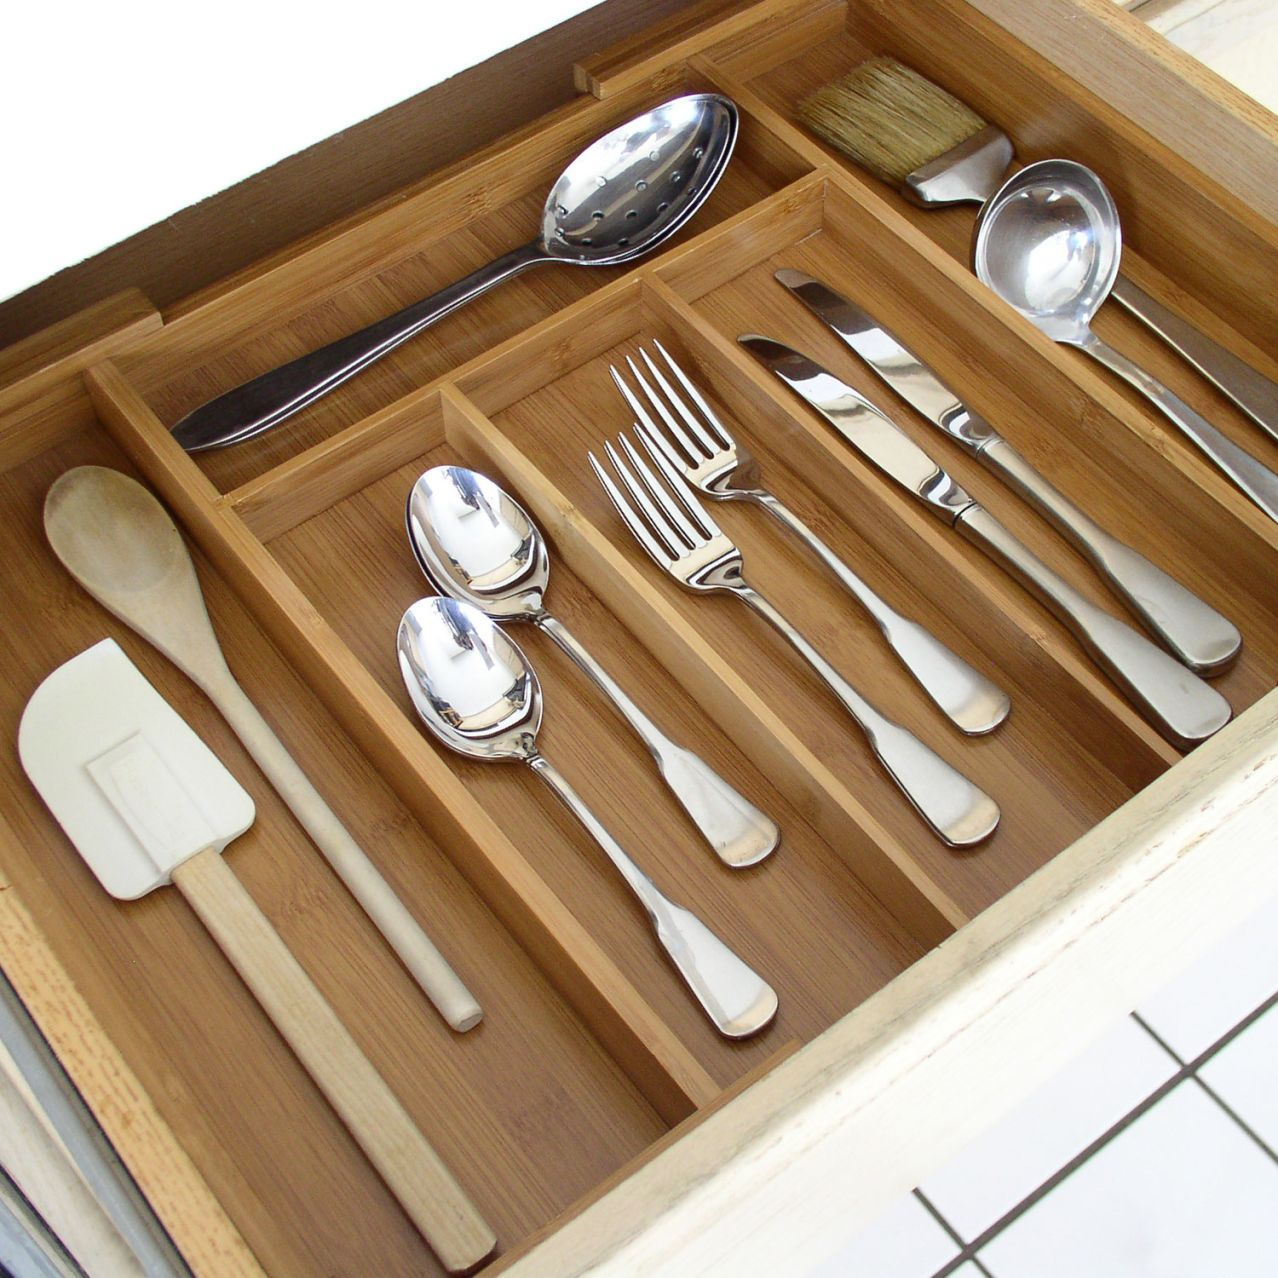 Expandable Bamboo Silverware Tray Kitchen Drawer Organization Kitchen Drawers Bamboo Silverware